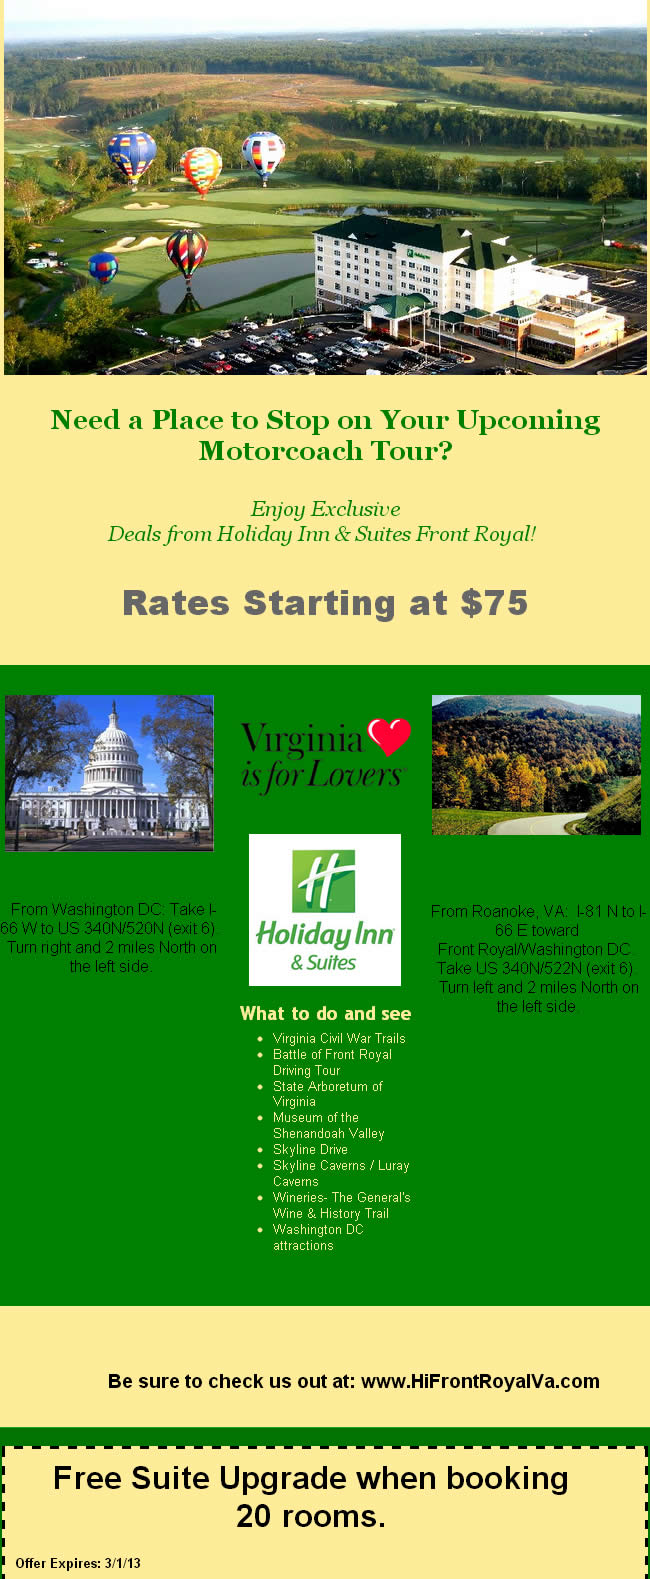 Special Deals from Holiday Inn & Suites Front